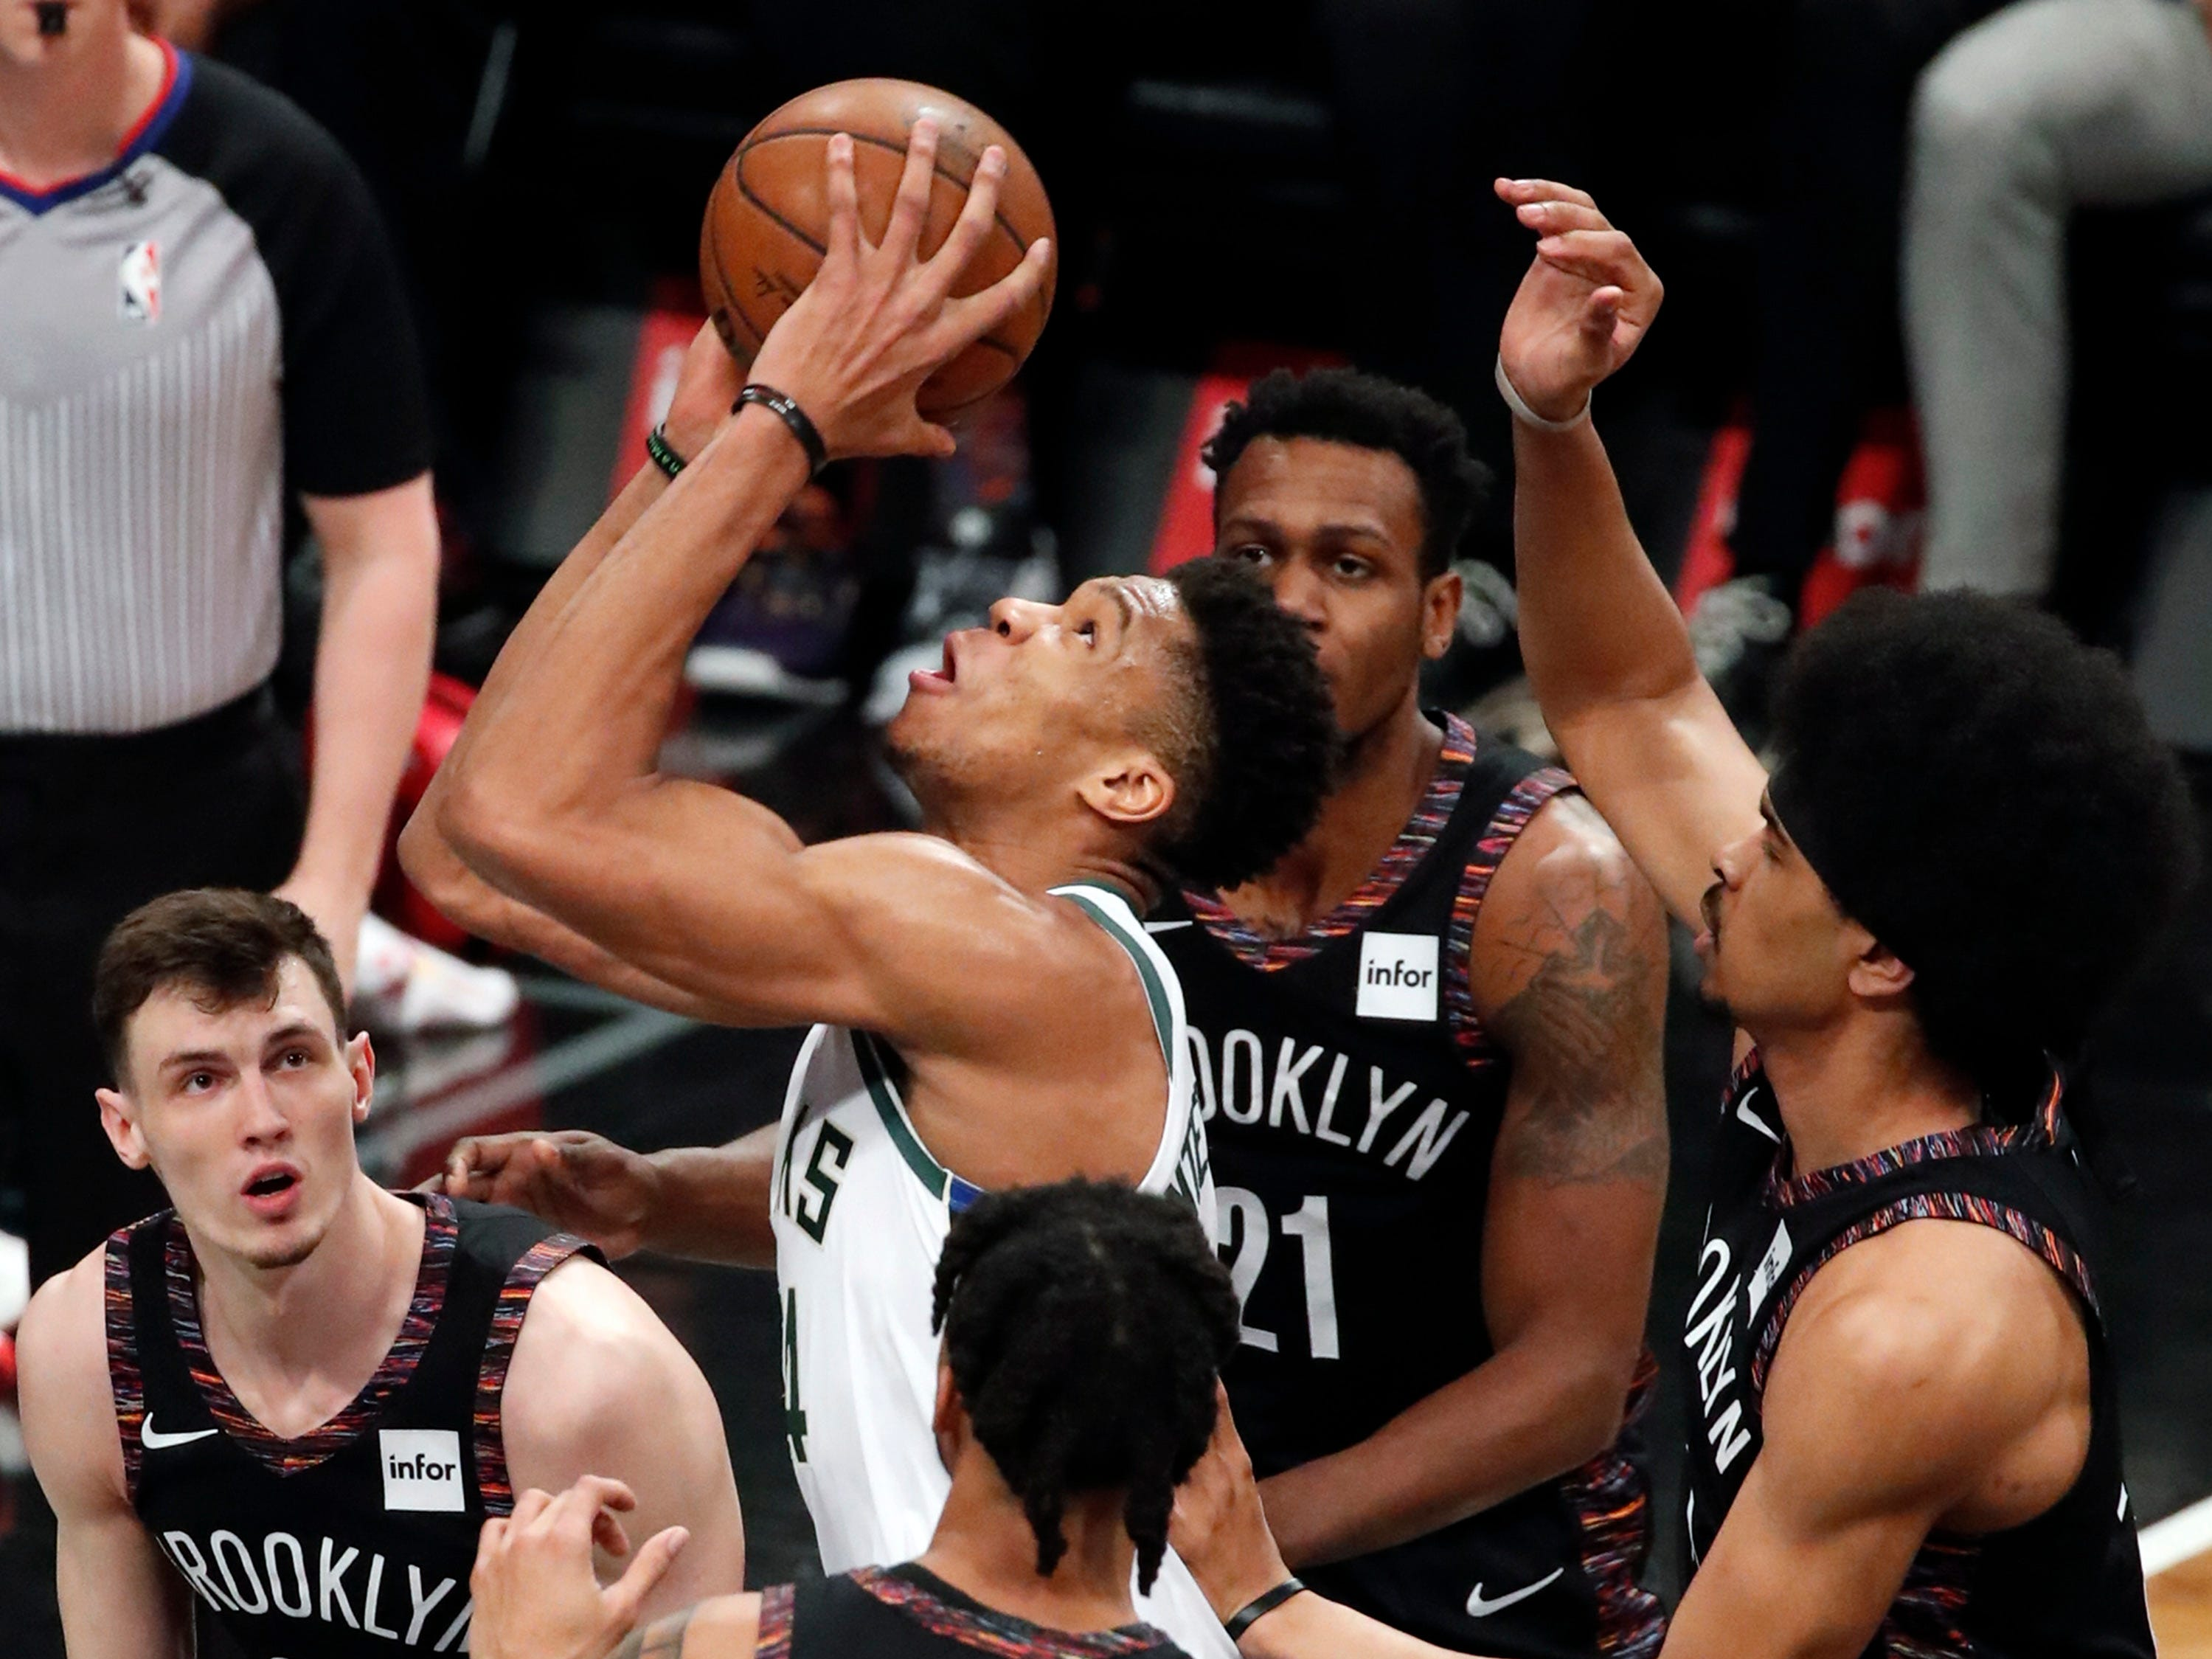 Bucks forward Giannis Antetokounmpo goes up for a shot down low despite being surrounded by a quartet of Nets players during the first half Monday.